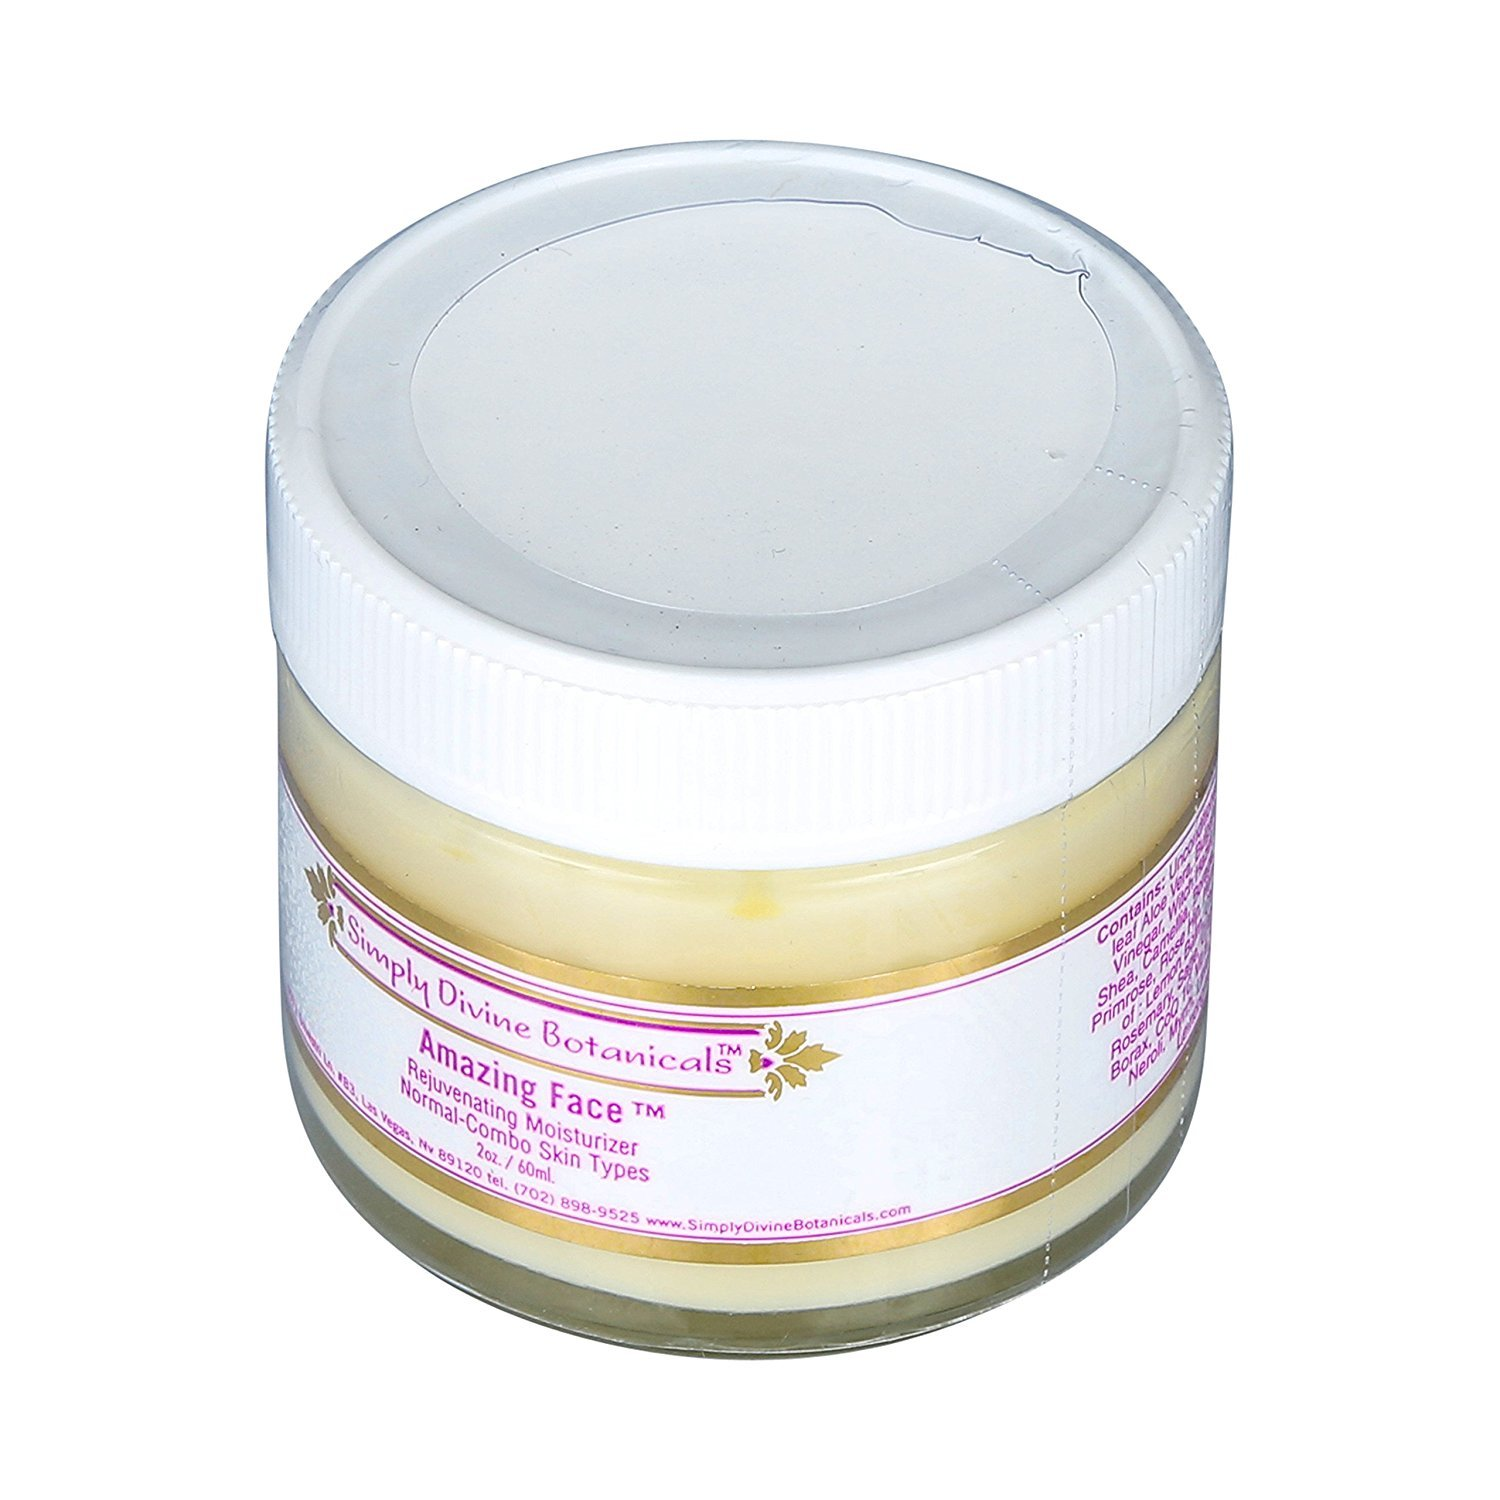 Simply Divine Botanicals Amazing Face Rejuvenating Moisturizer 2 oz.